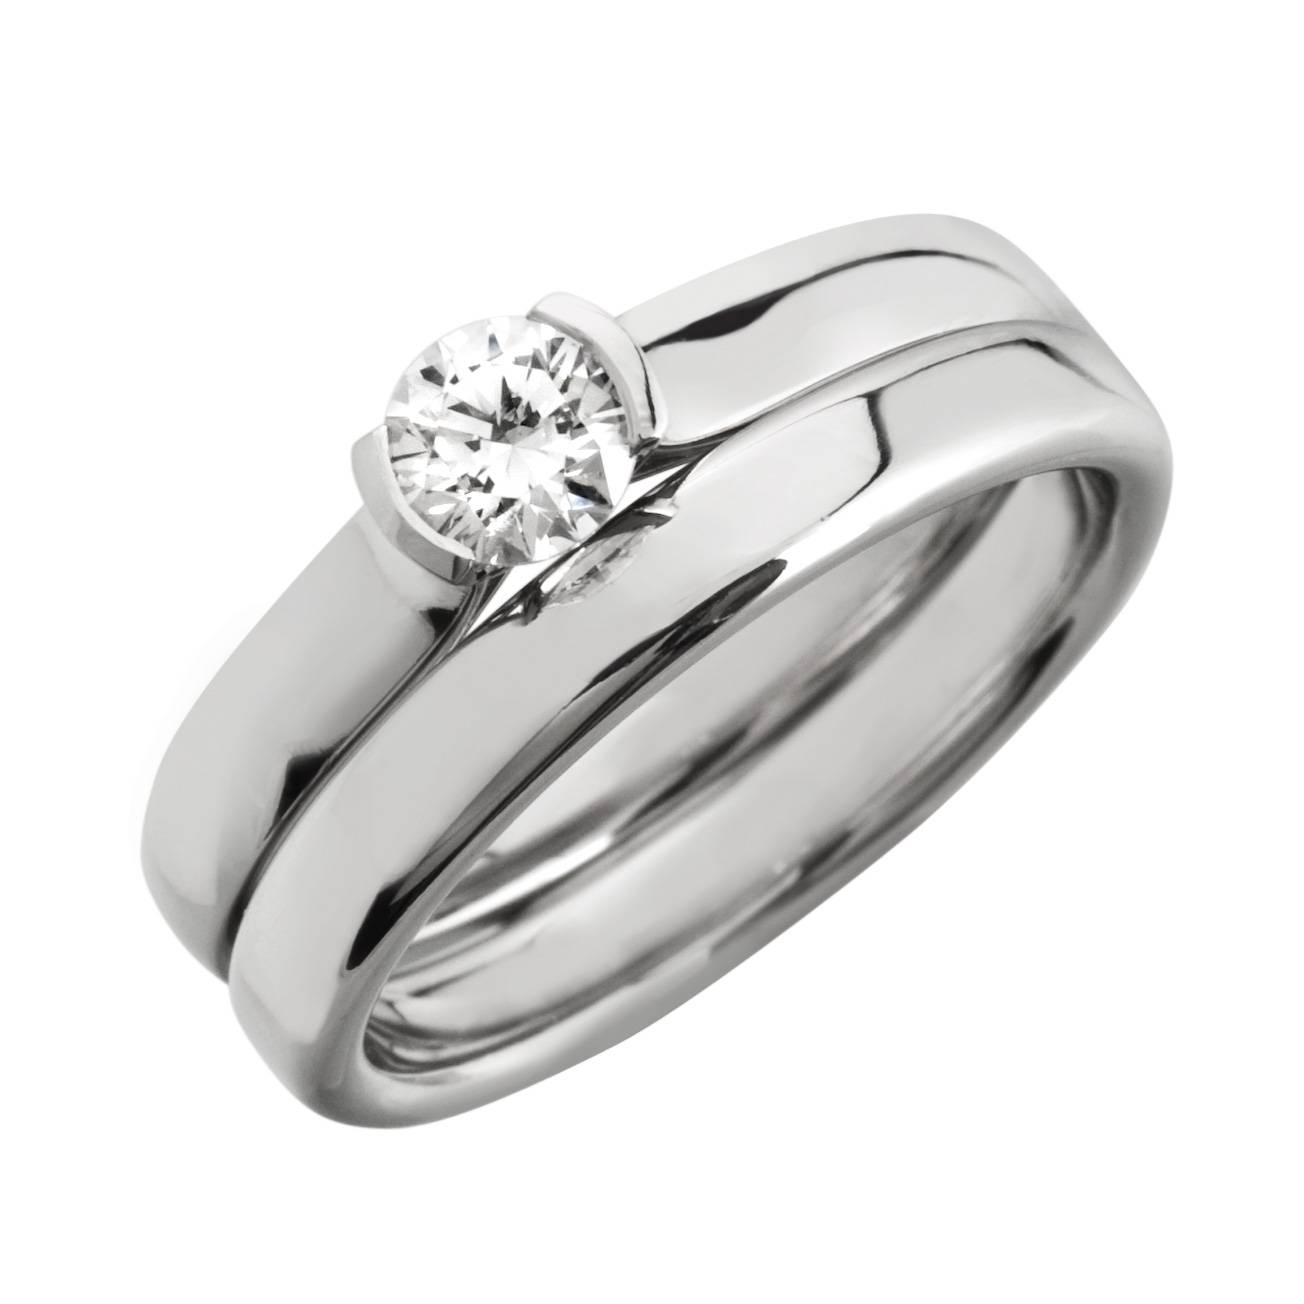 Wedding Rings : Bridal Set Diamond Rings Diamond Engagement Ring Regarding Engagement Wedding Bands (View 10 of 15)